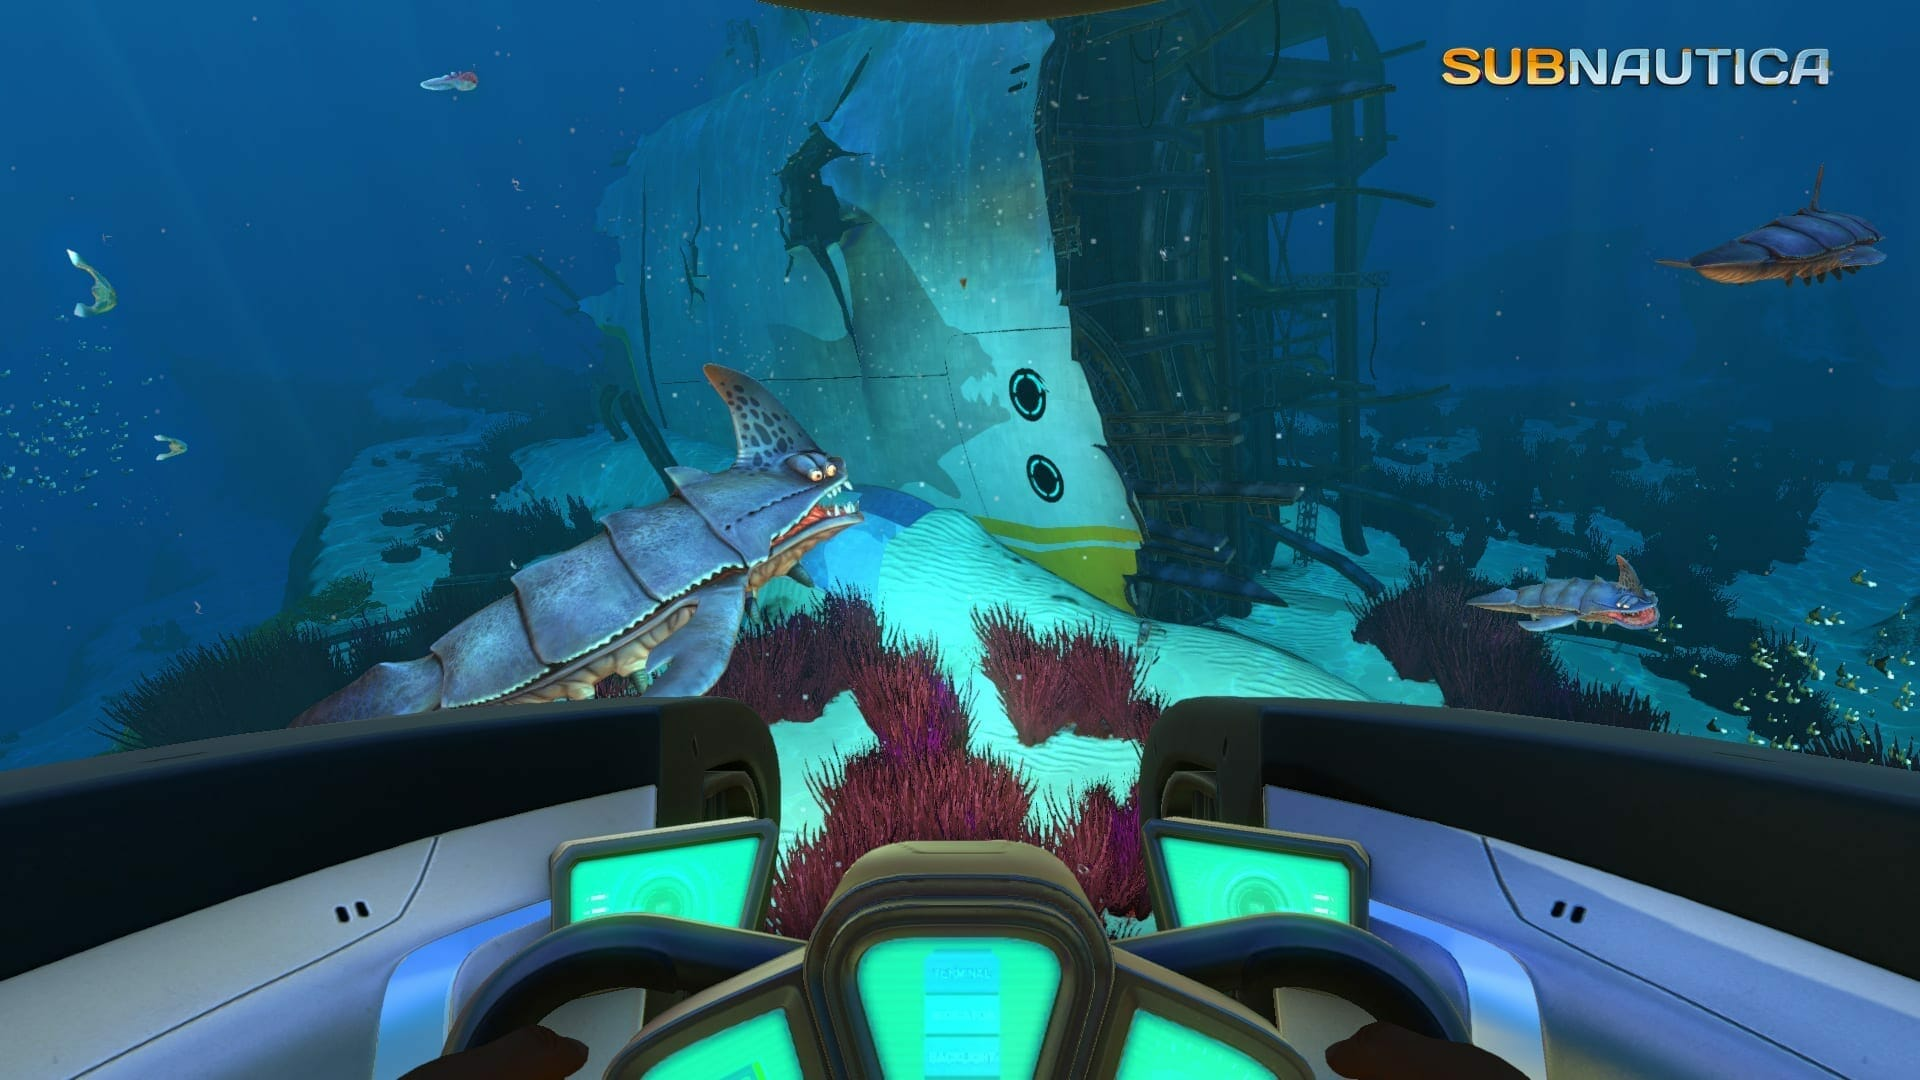 Subnautica for PS4 and Xbox One Release Date